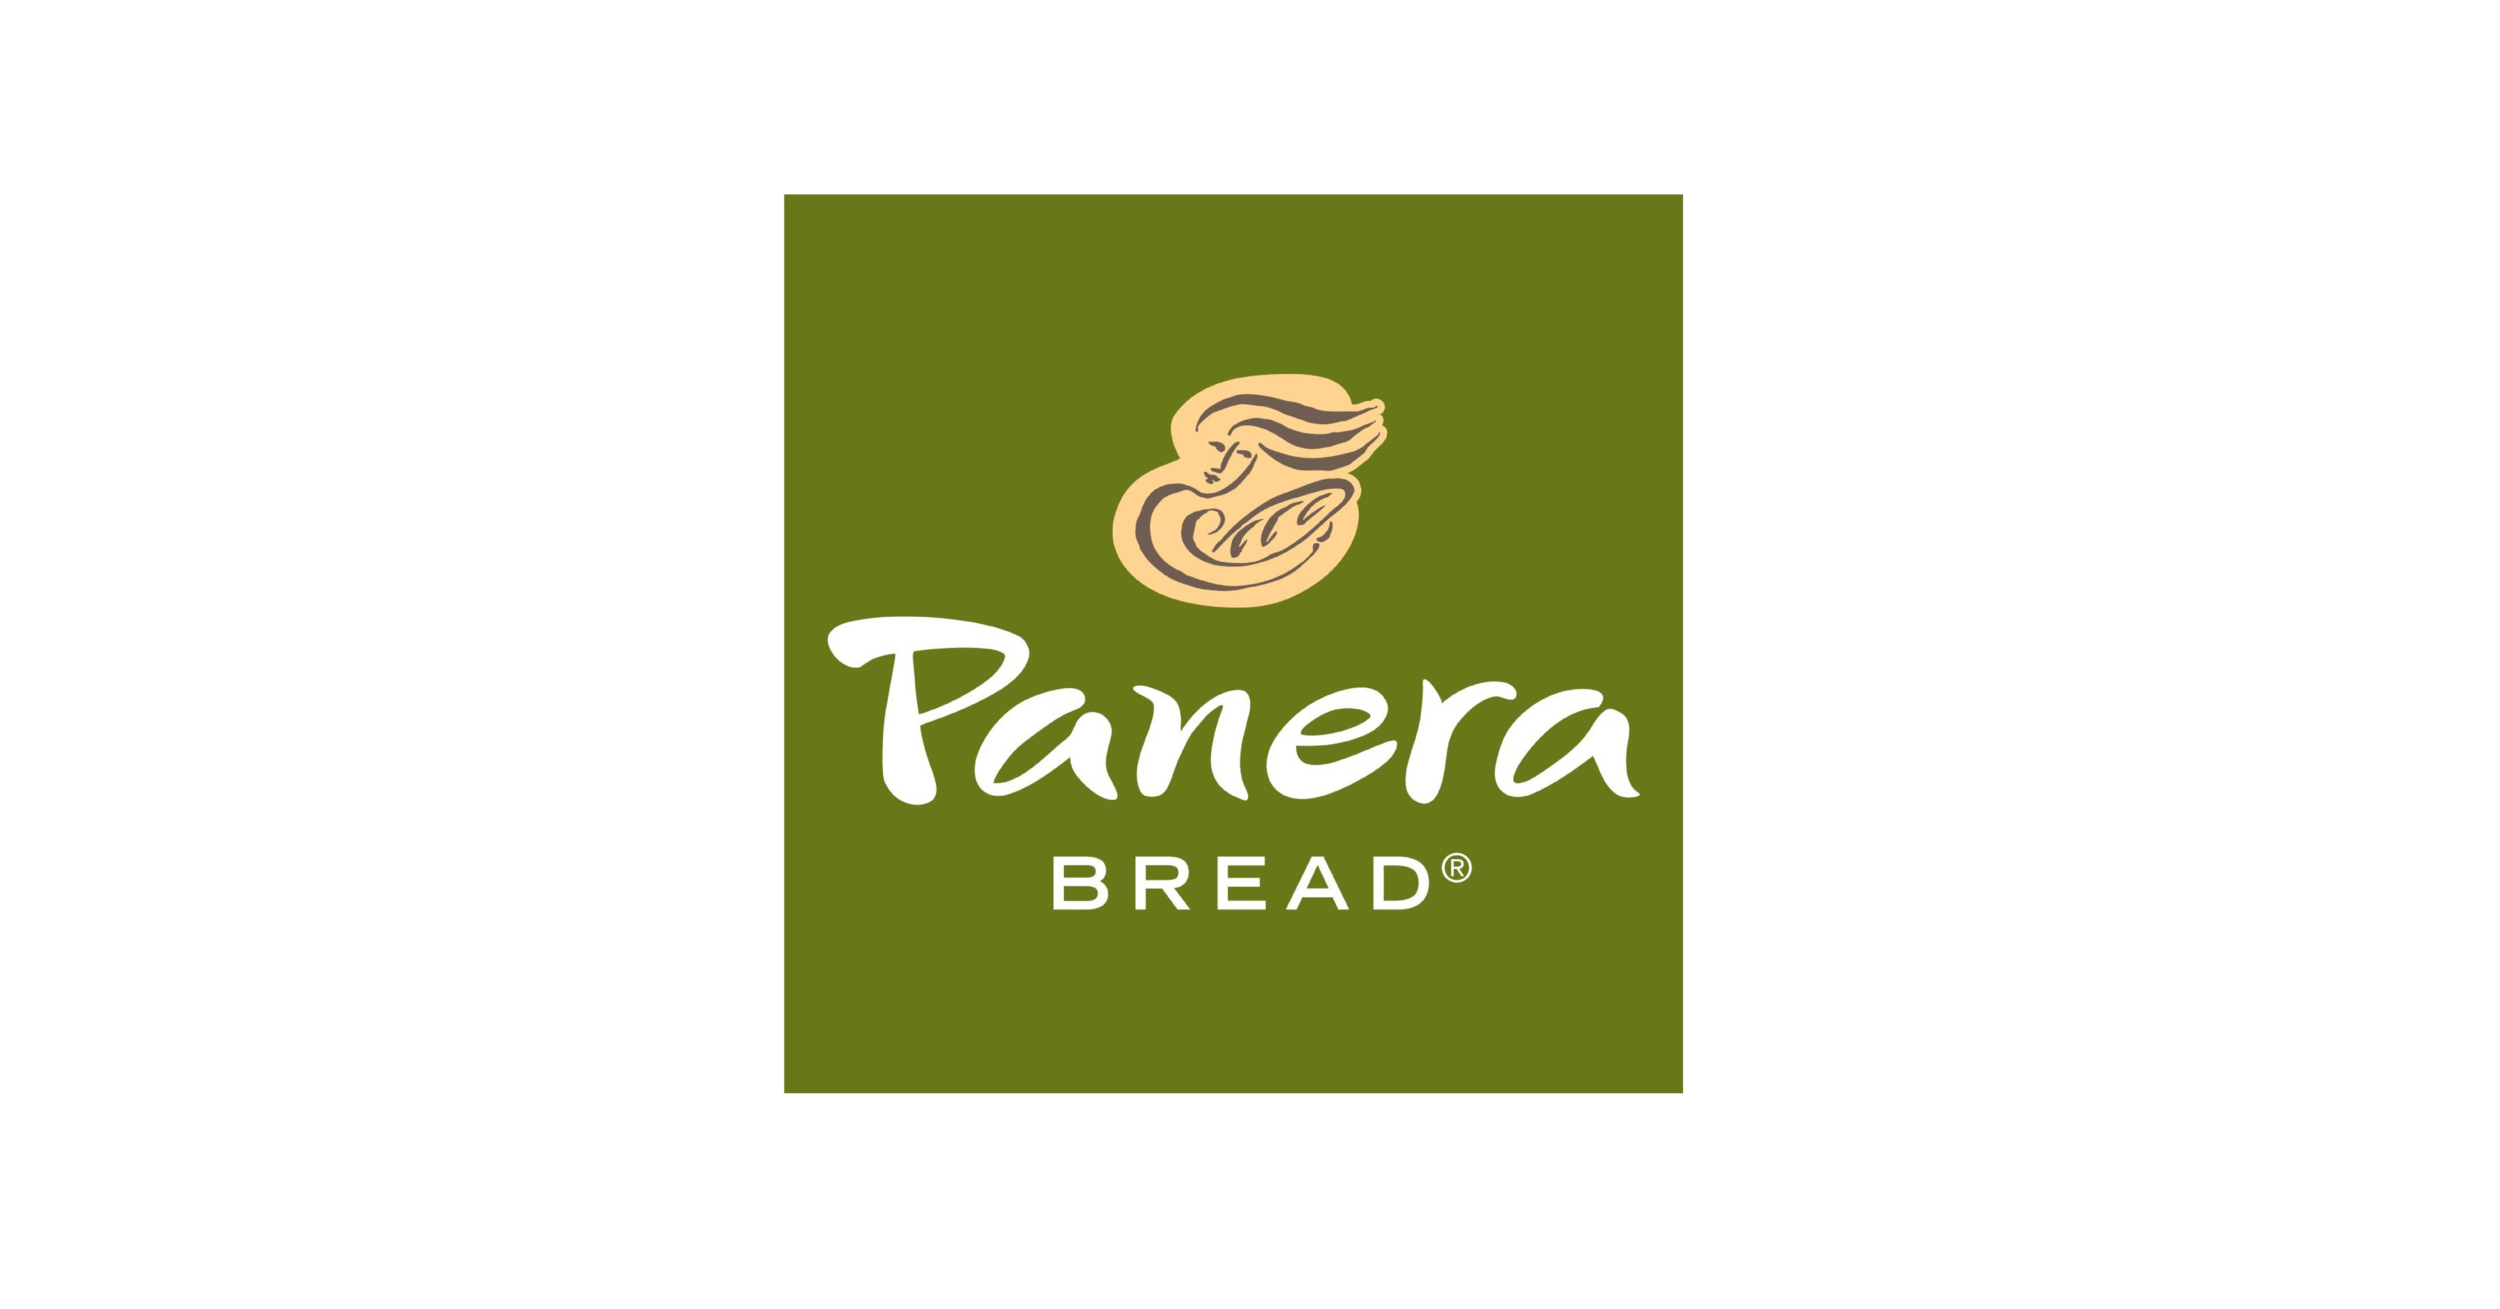 Plant-based tips for eating at Panera Bread. Vegan menu options for Panera Bread explained.